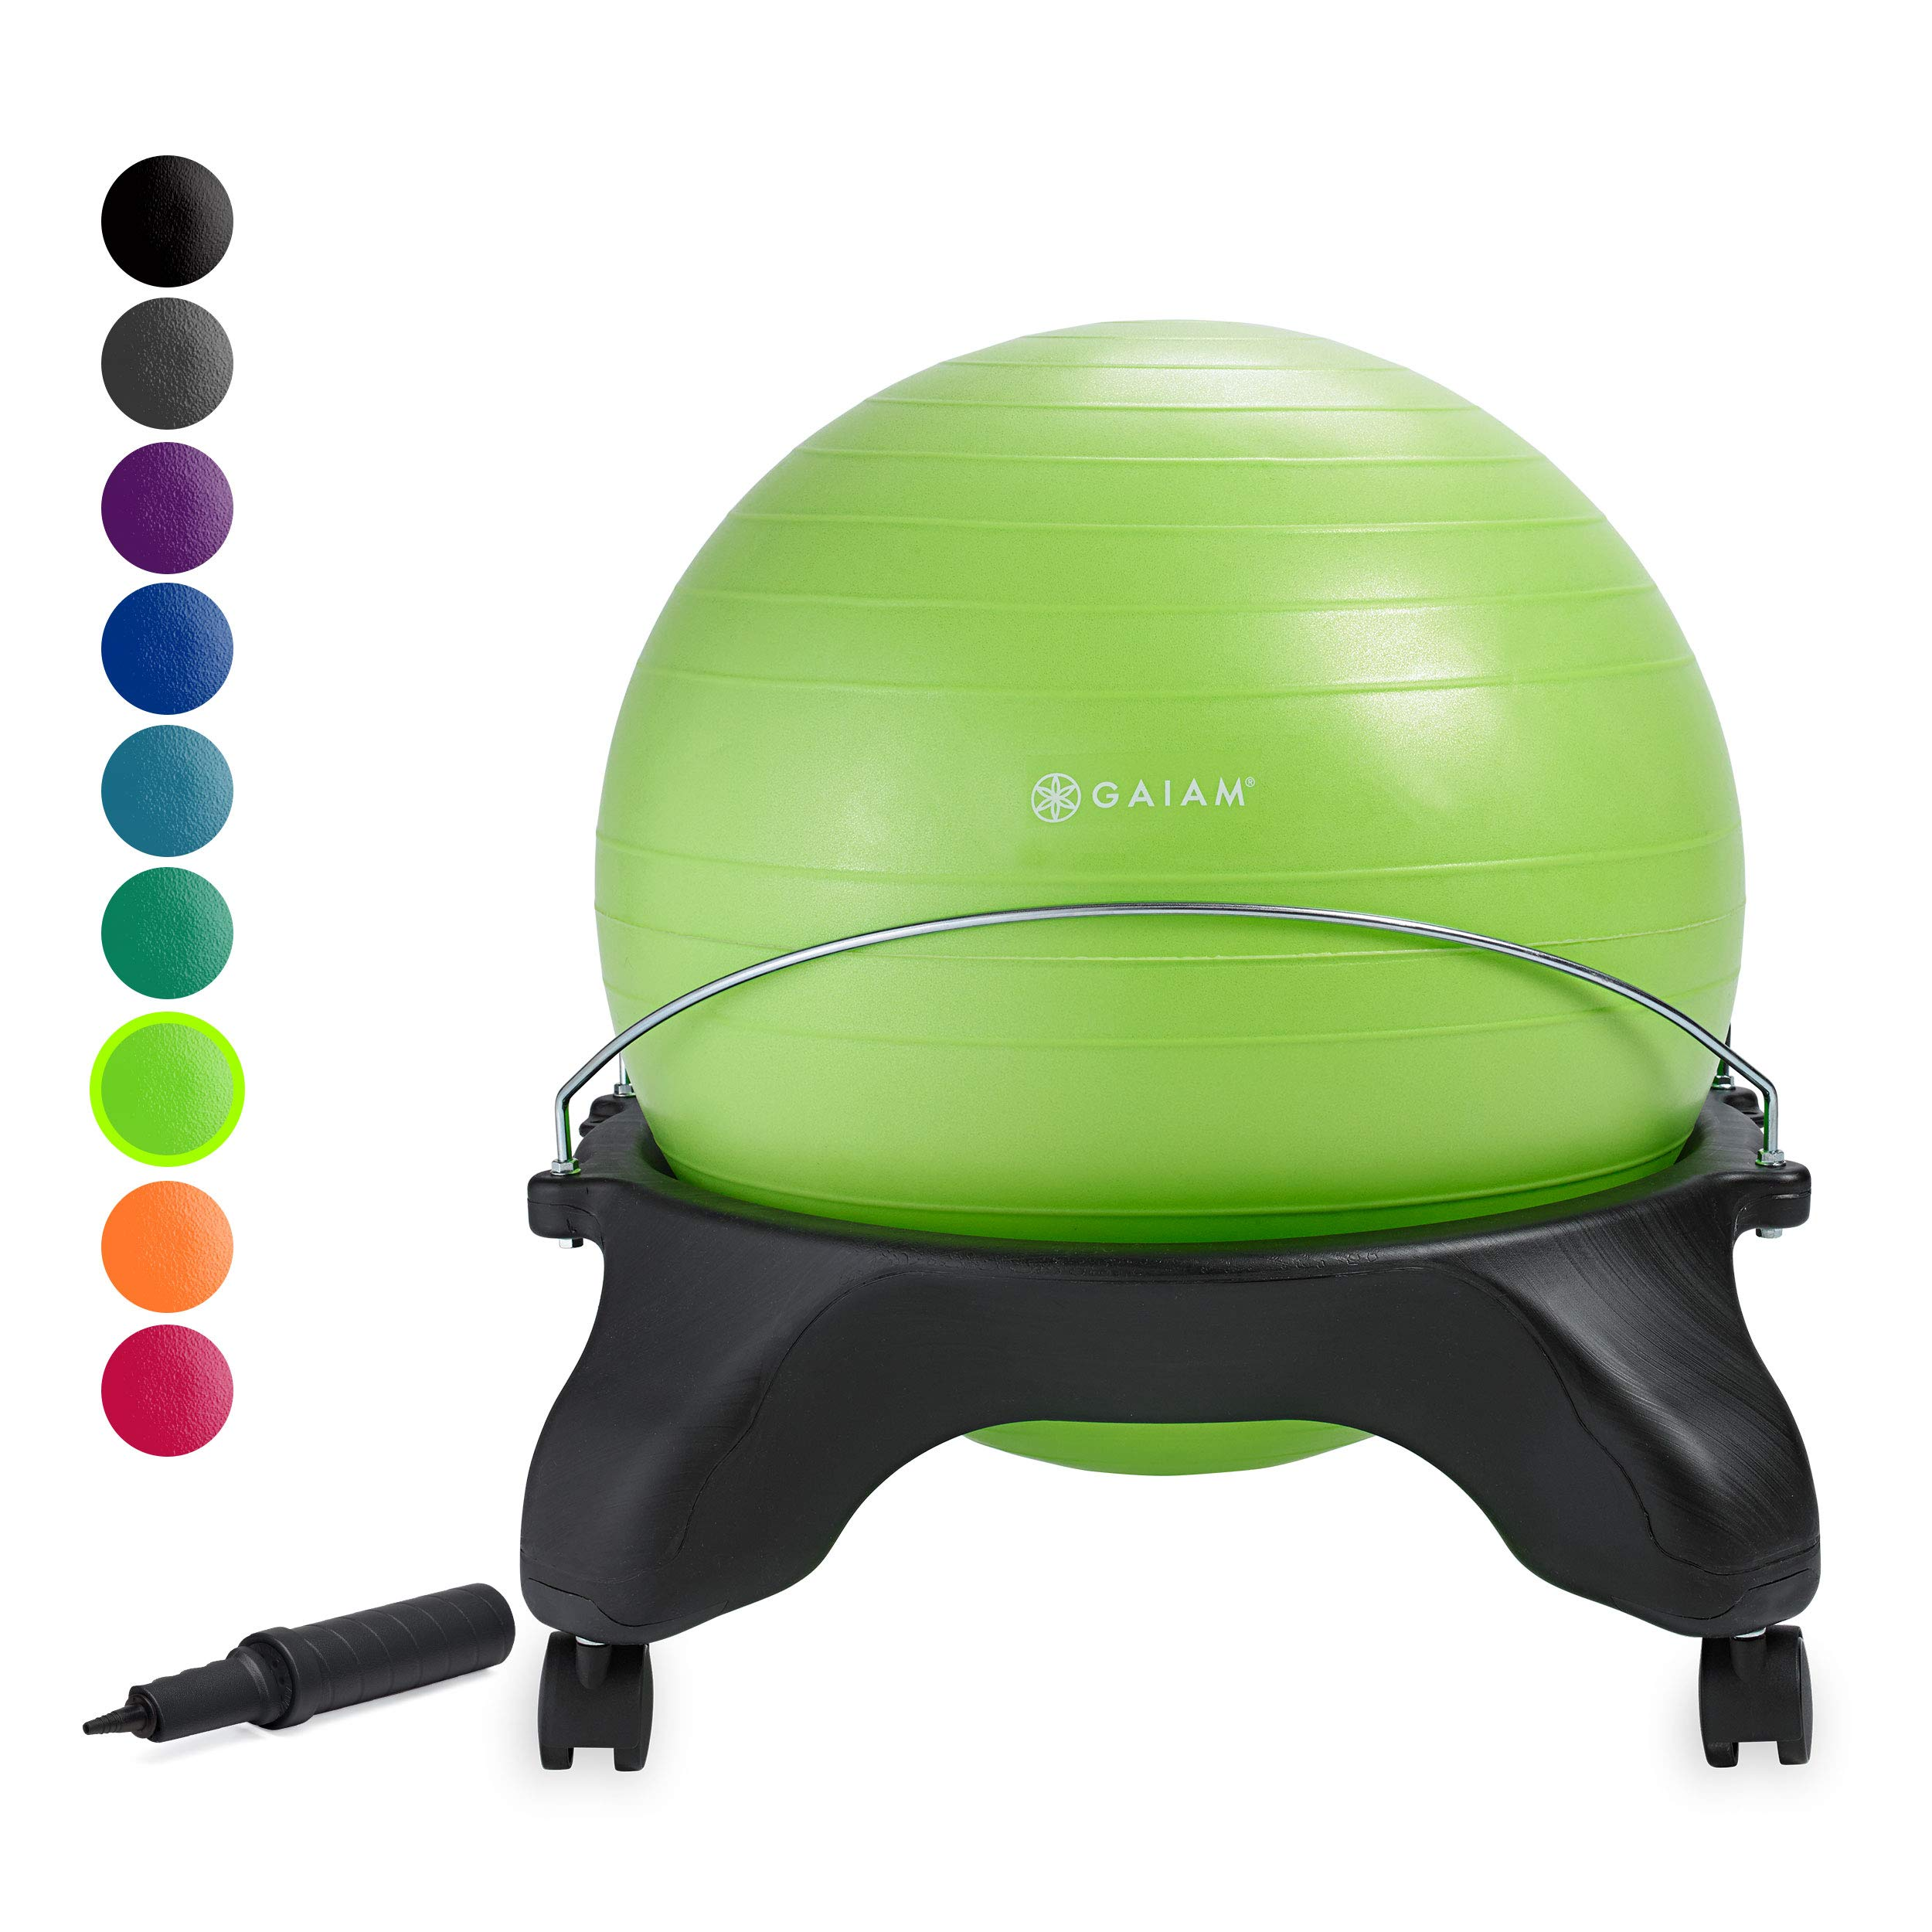 Gaiam Classic Backless Balance Ball Chair – Exercise Stability Yoga Ball Premium Ergonomic Chair for Home and Office Desk with Air Pump, Exercise Guide and Satisfaction Guarantee, Wasabi